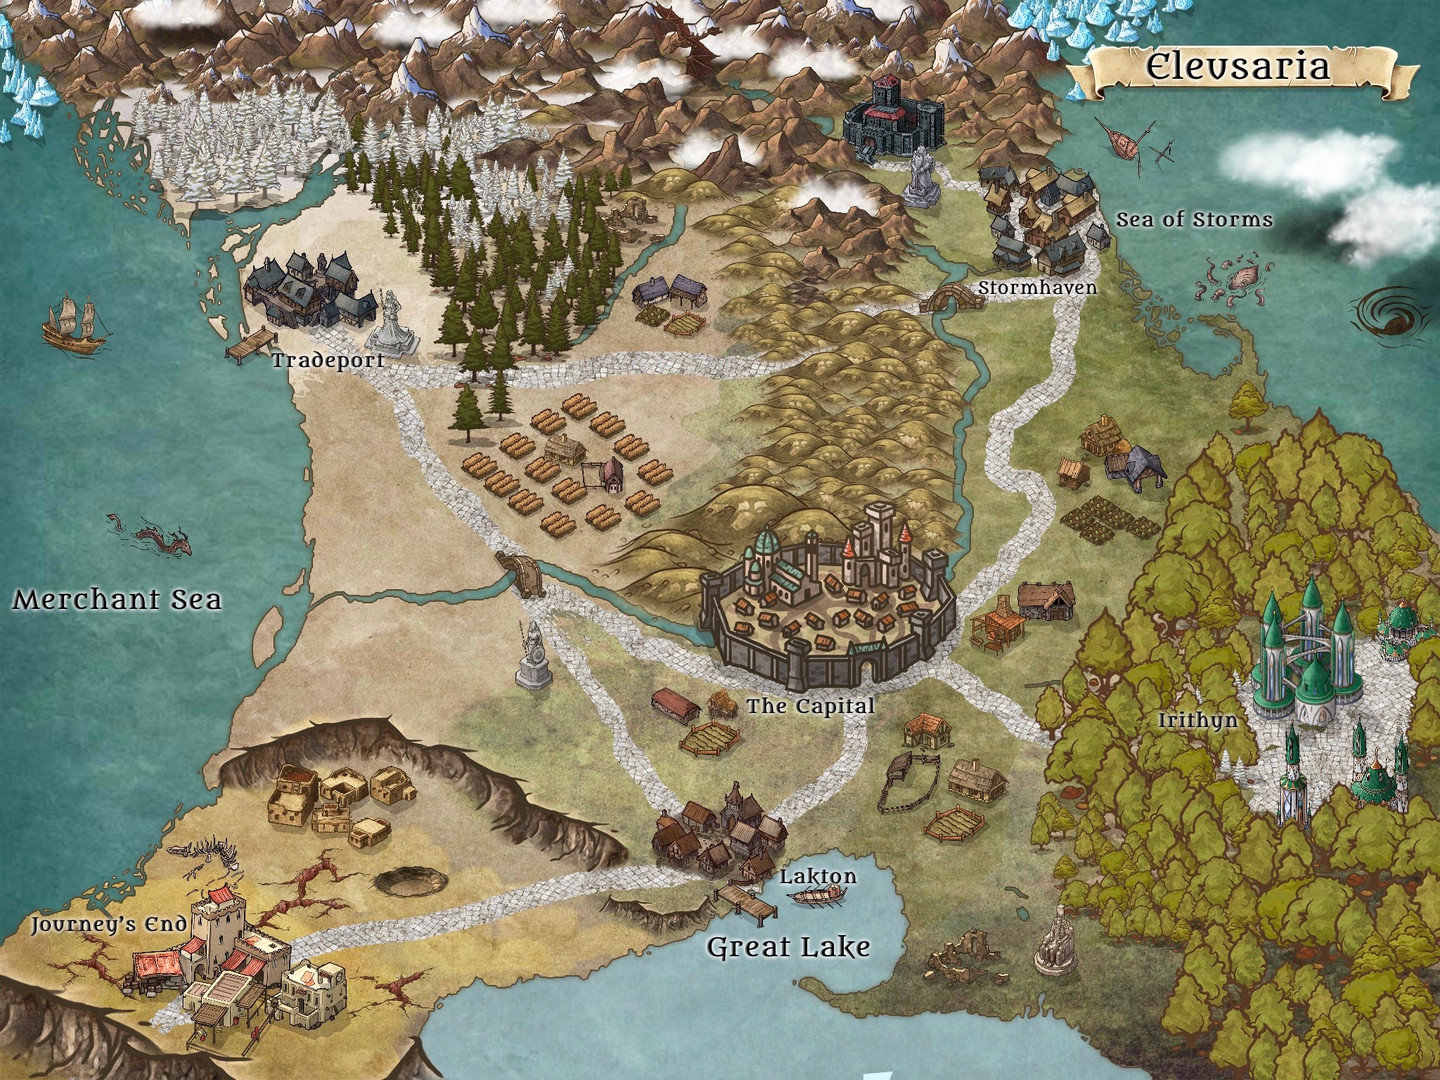 Eleusaria World Map